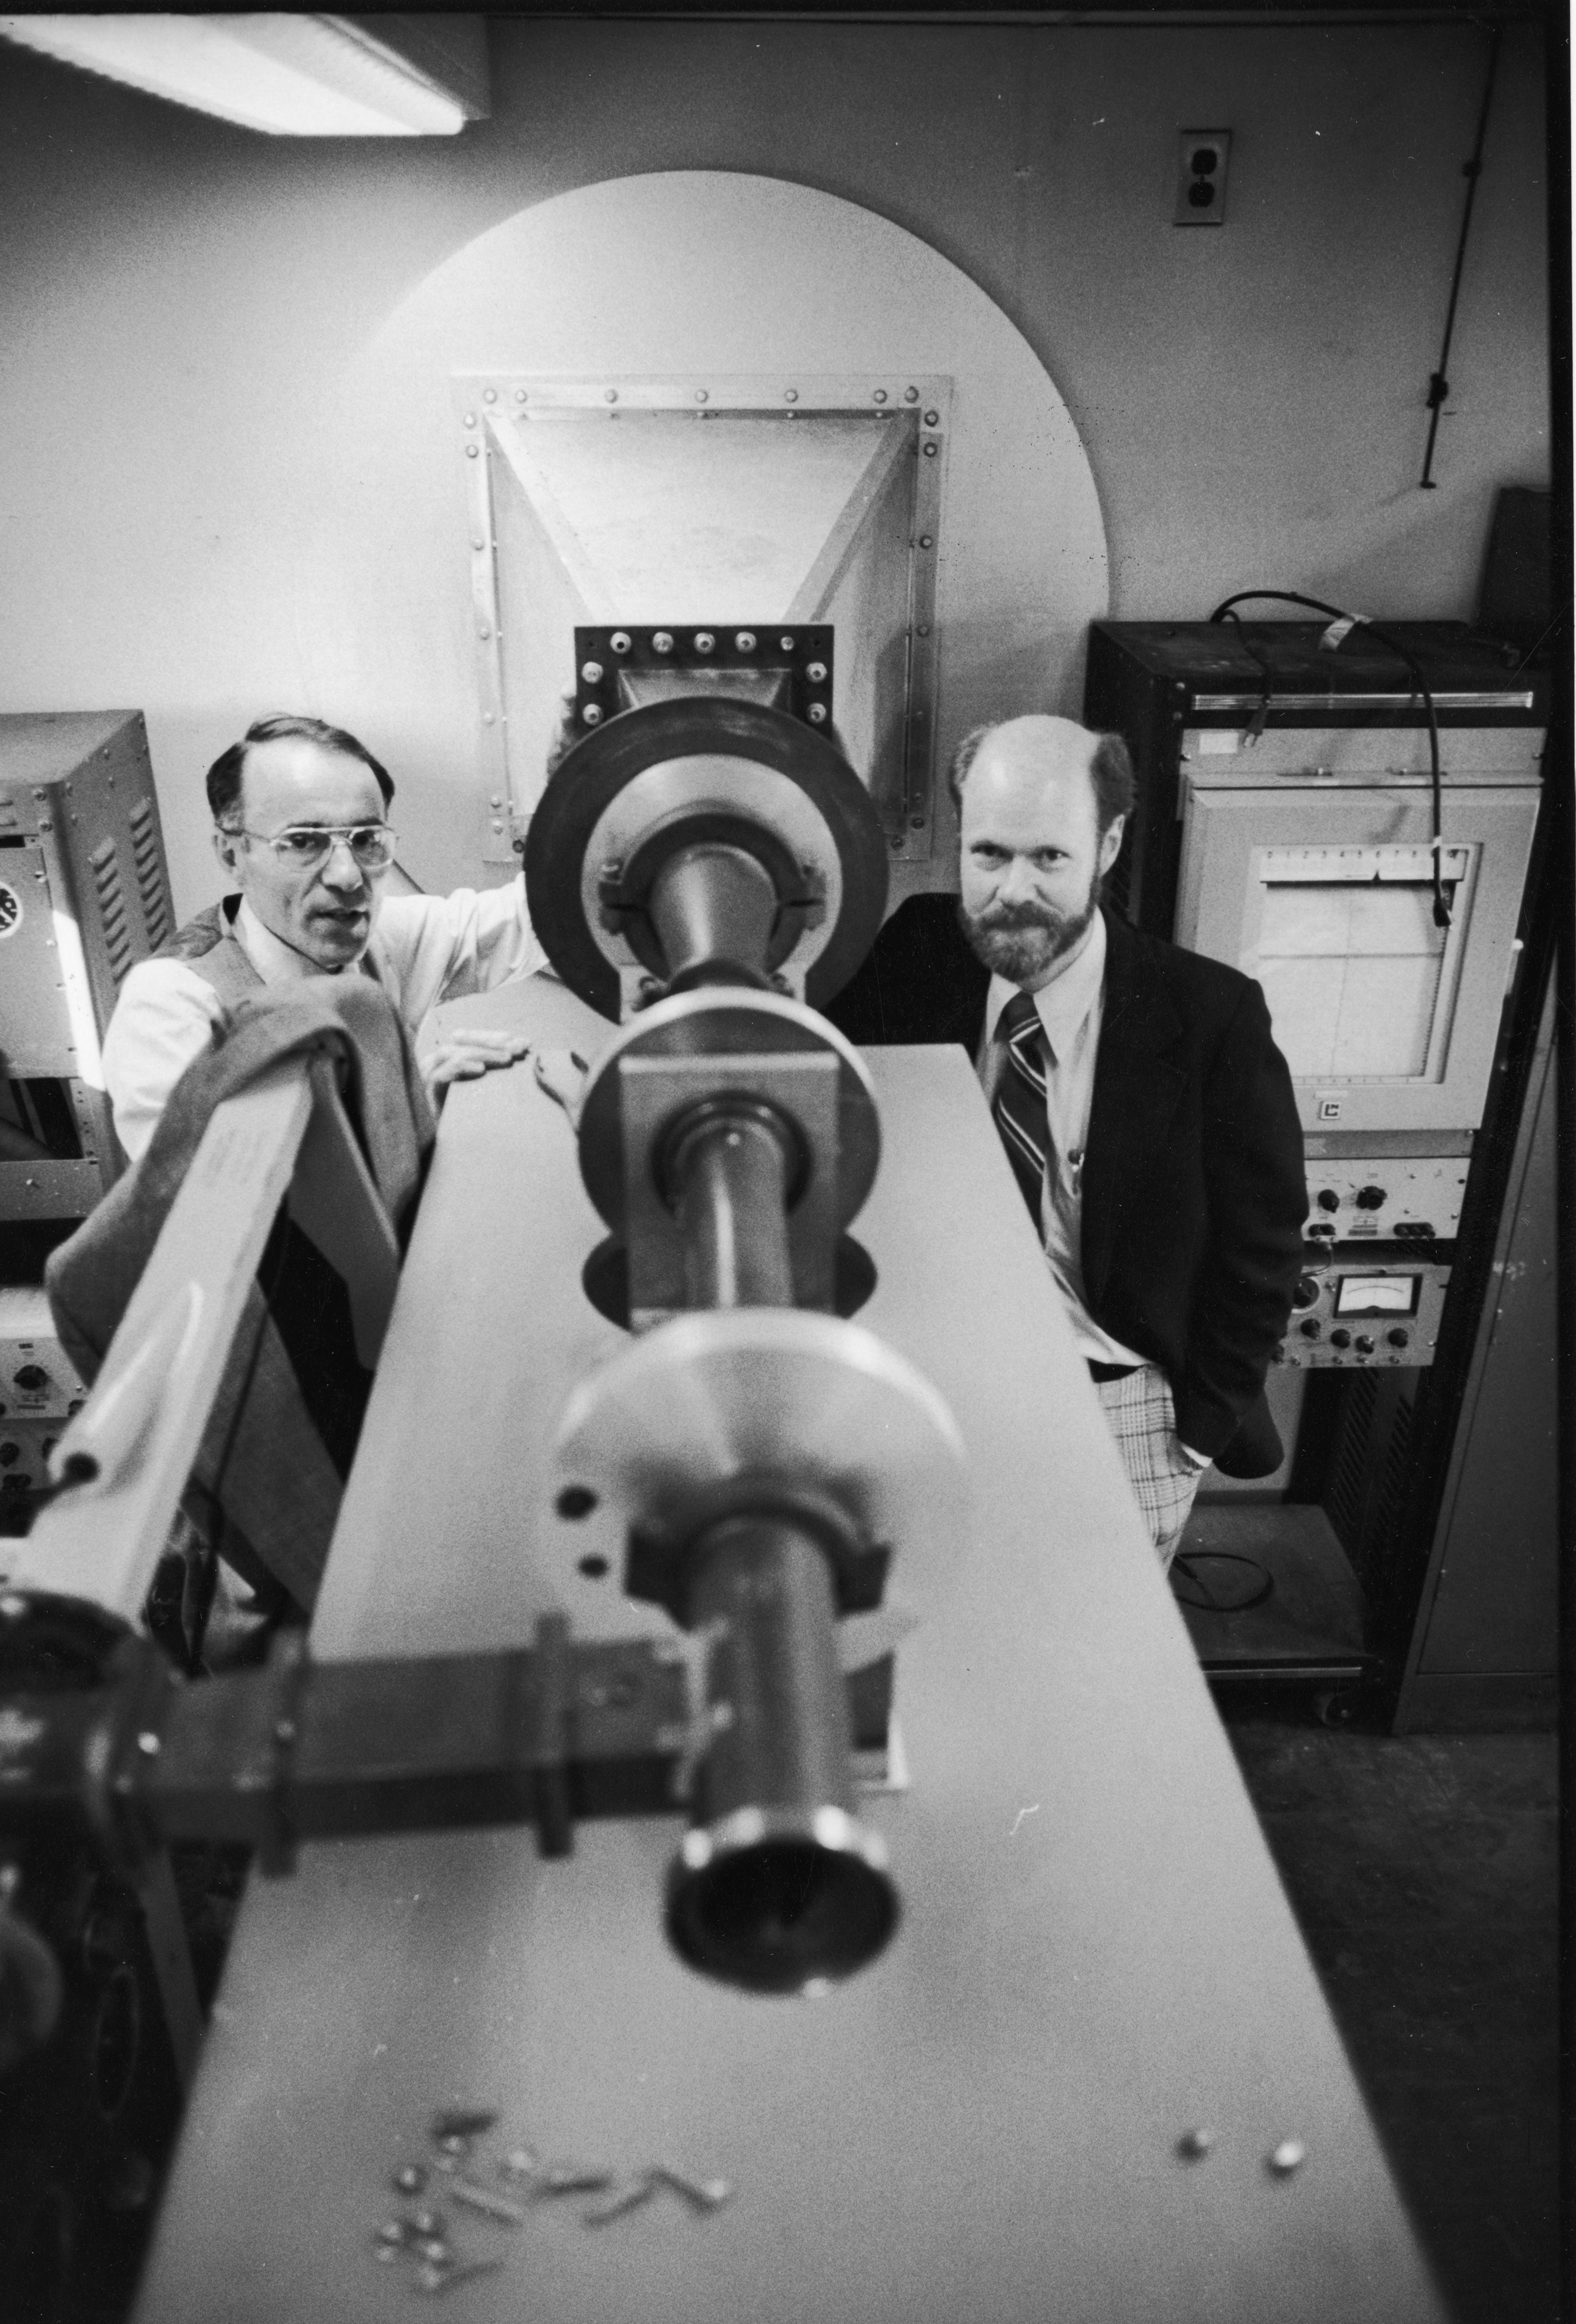 (R-L) The 1978 Nobel Prize in Physics winning Bell Telephone Labs scientists Robert Wilson & Arno Penzias in front of the antenna which helped them discover cosmic microwave background radiation.